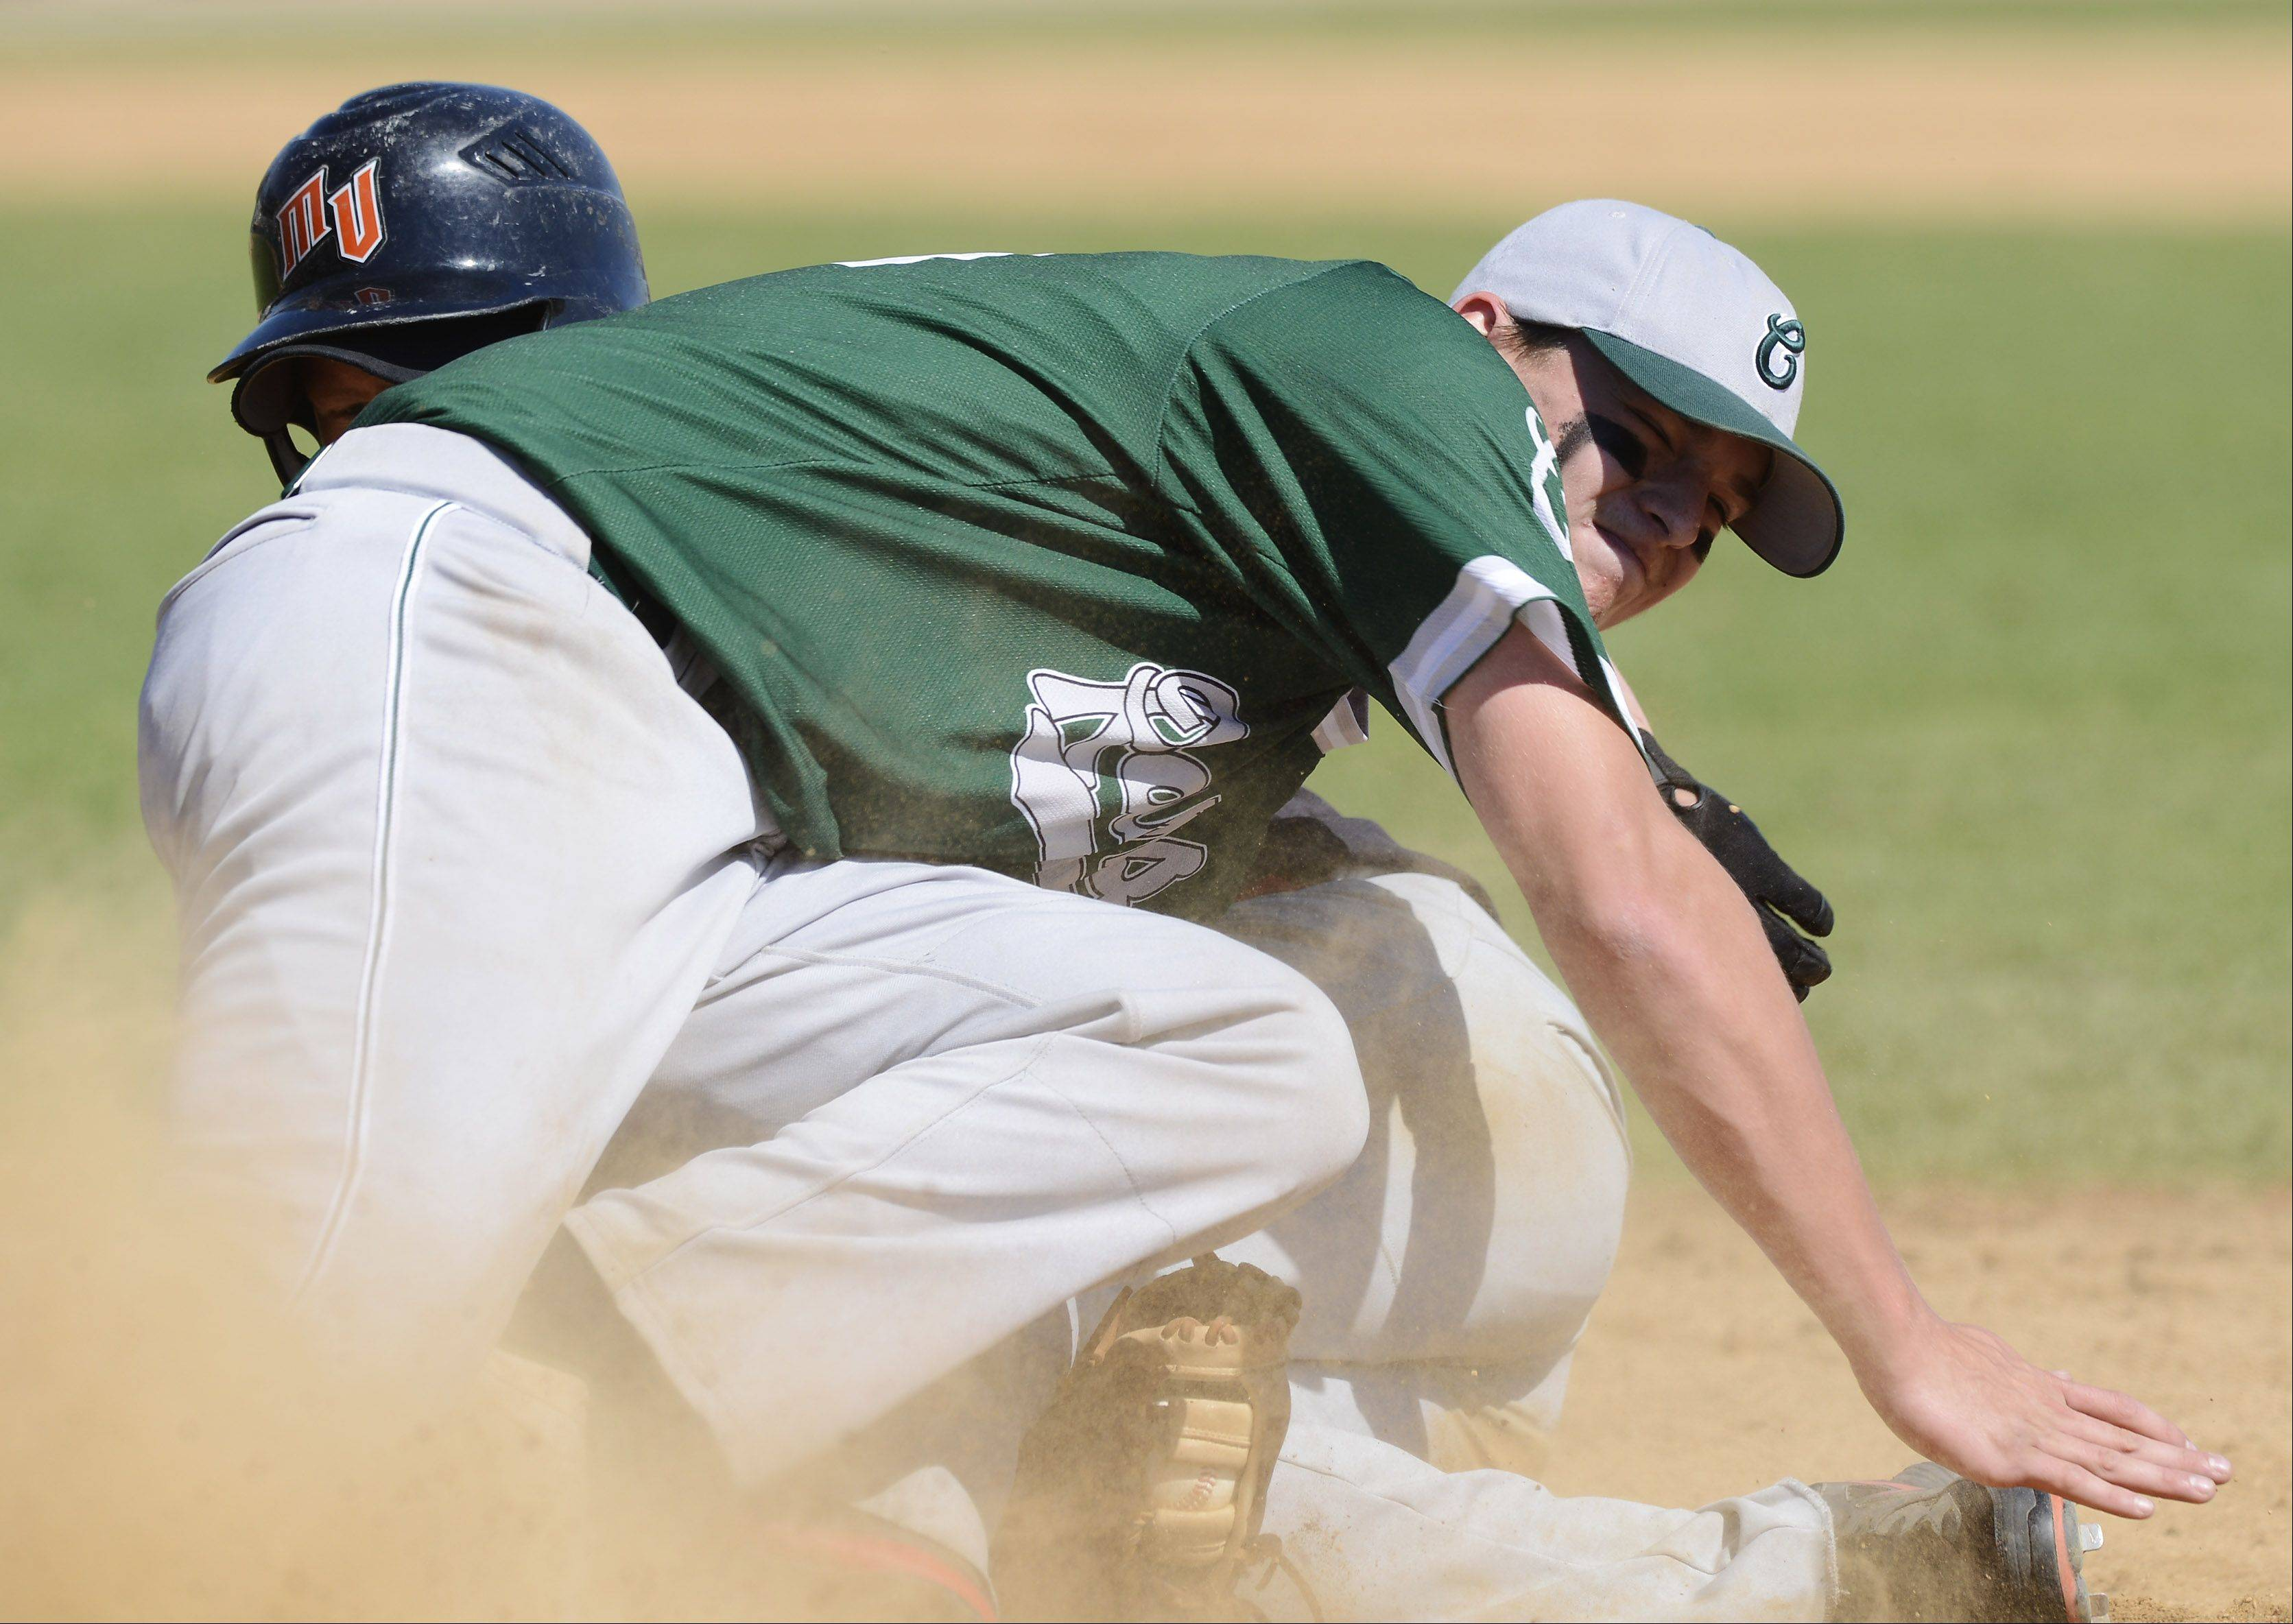 Grayslake Central first baseman Kyle Clark tags out Mt. Vernon's Jake Pike to complete an inning ending double play to end the top of the sixth inning during the Class 3A state baseball third-place game at Silver Cross Field in Joliet Saturday.